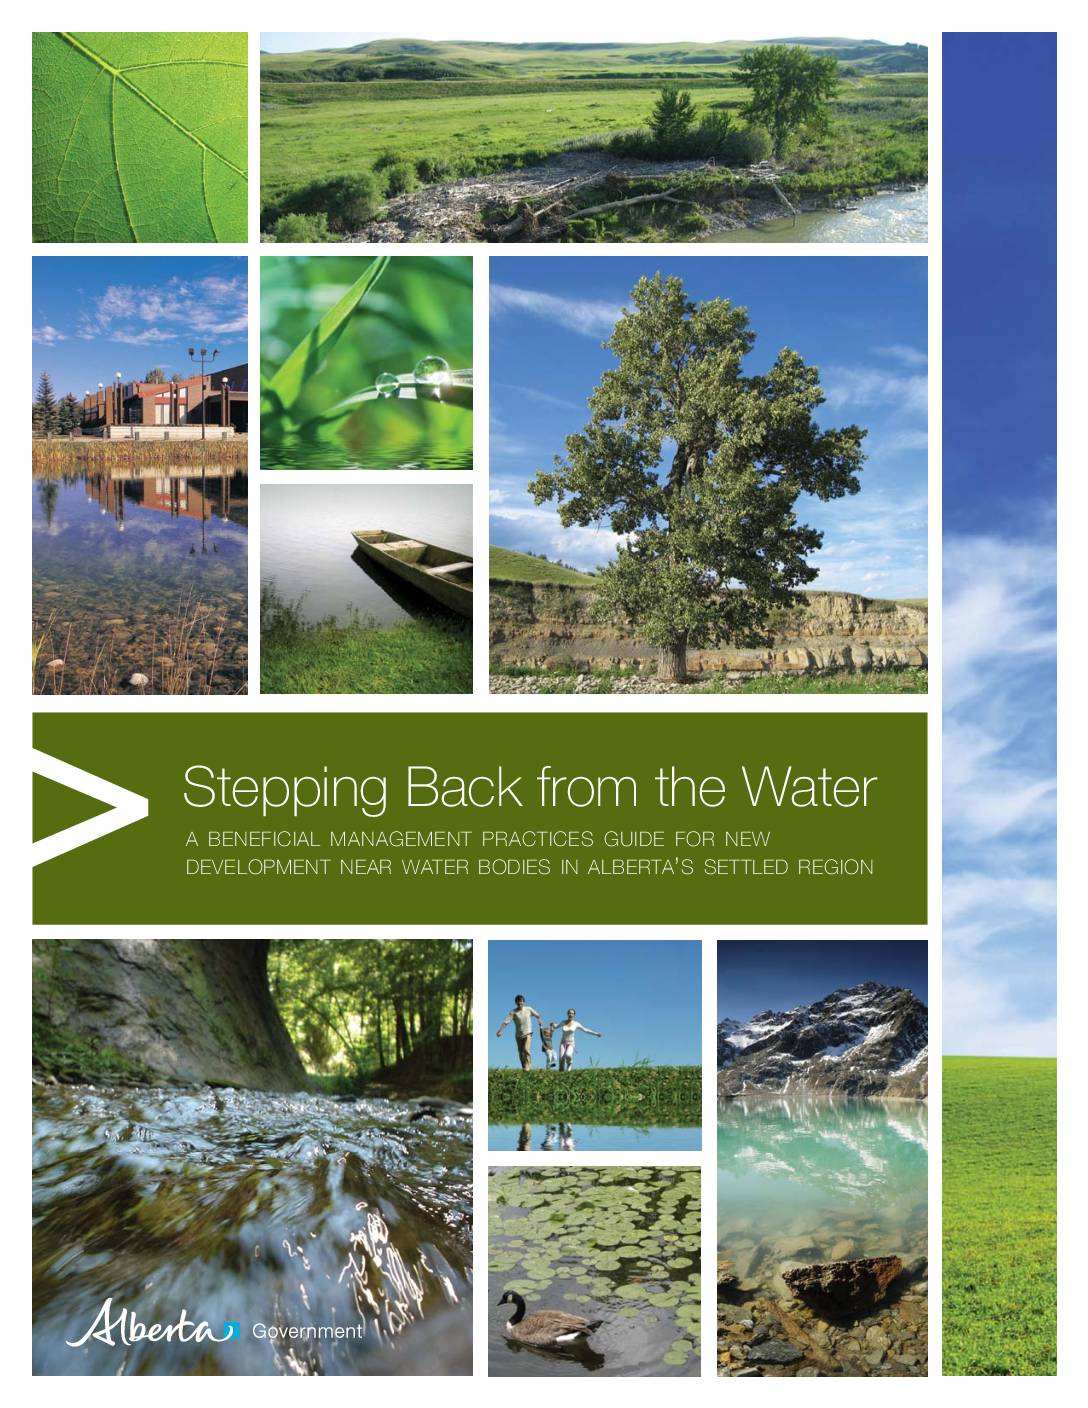 Stepping Back from the Water: A Beneficial Management Practices Guide for New Development Near Water Bodies in Alberta's Settled Region